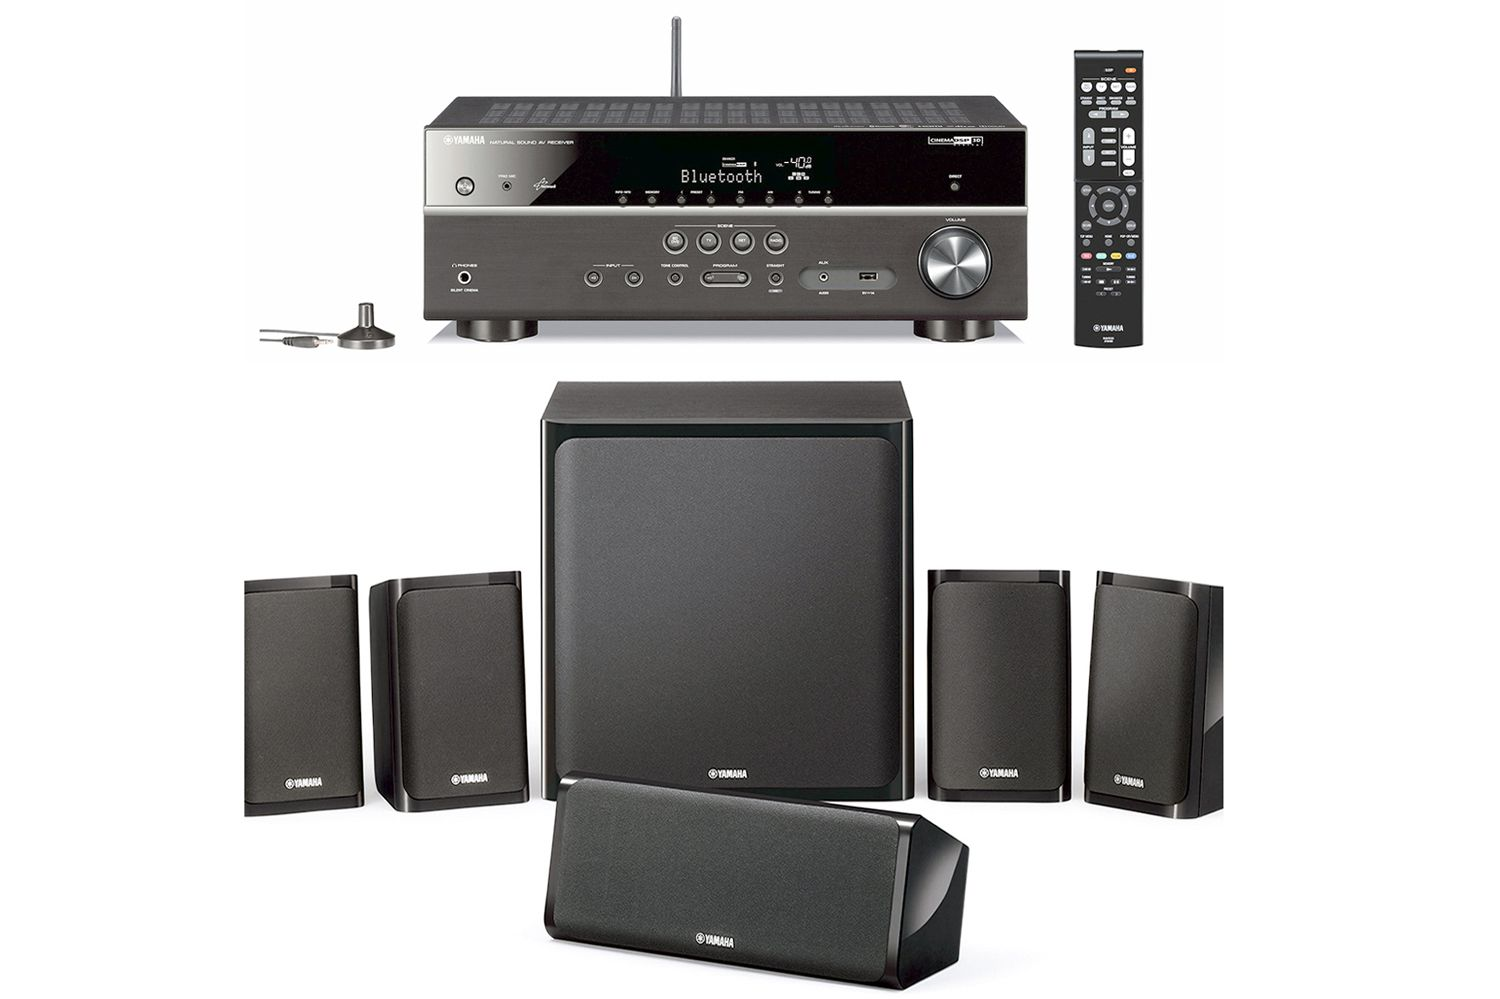 Yamaha 39 s yht 20 series home theater systems profiled for Yamaha tv receiver